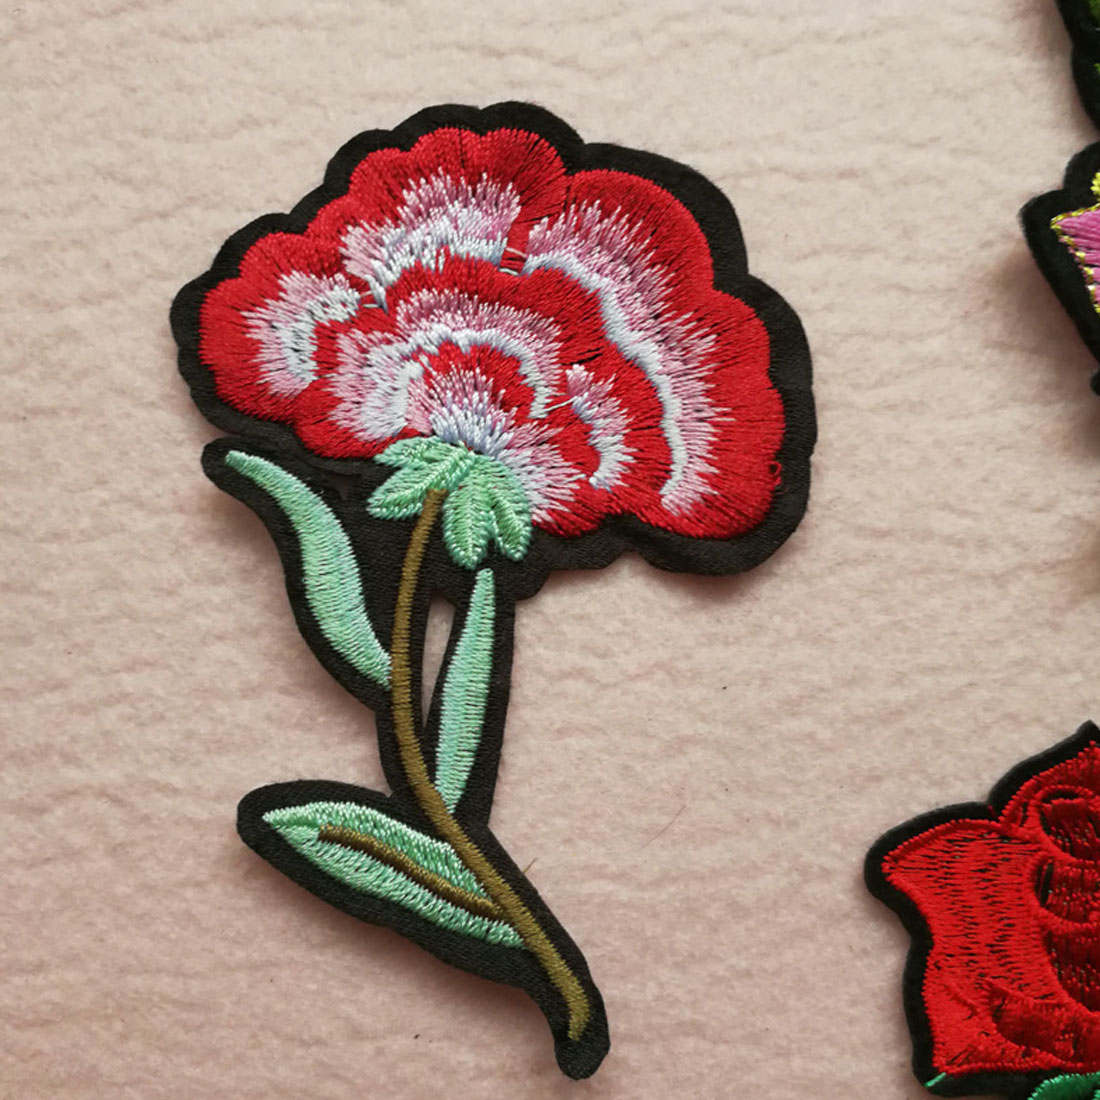 Floral Flowers CROSS STITCH FLOWER Iron On Applique Motif Patch